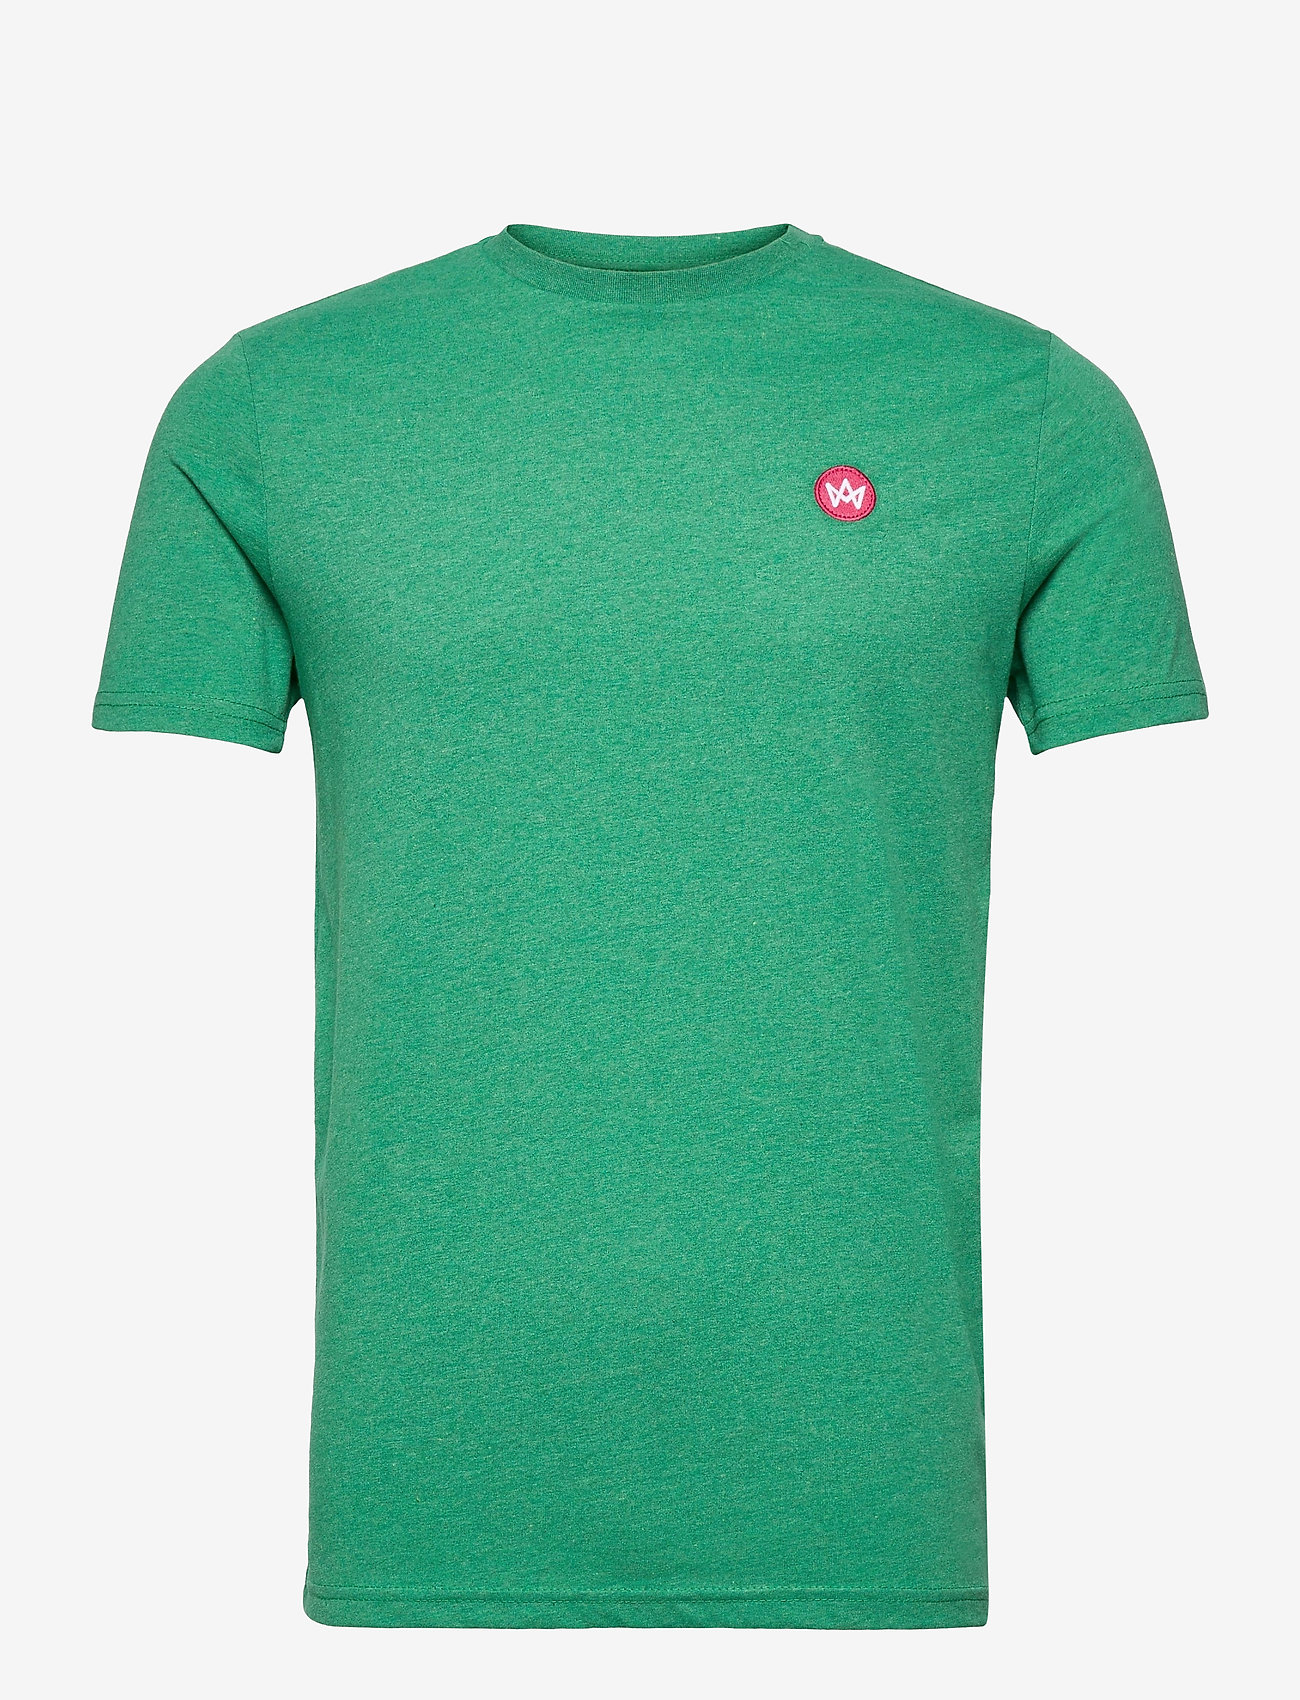 Kronstadt - Timmi Recycled cotton t-shirt - basic t-shirts - lime - 0